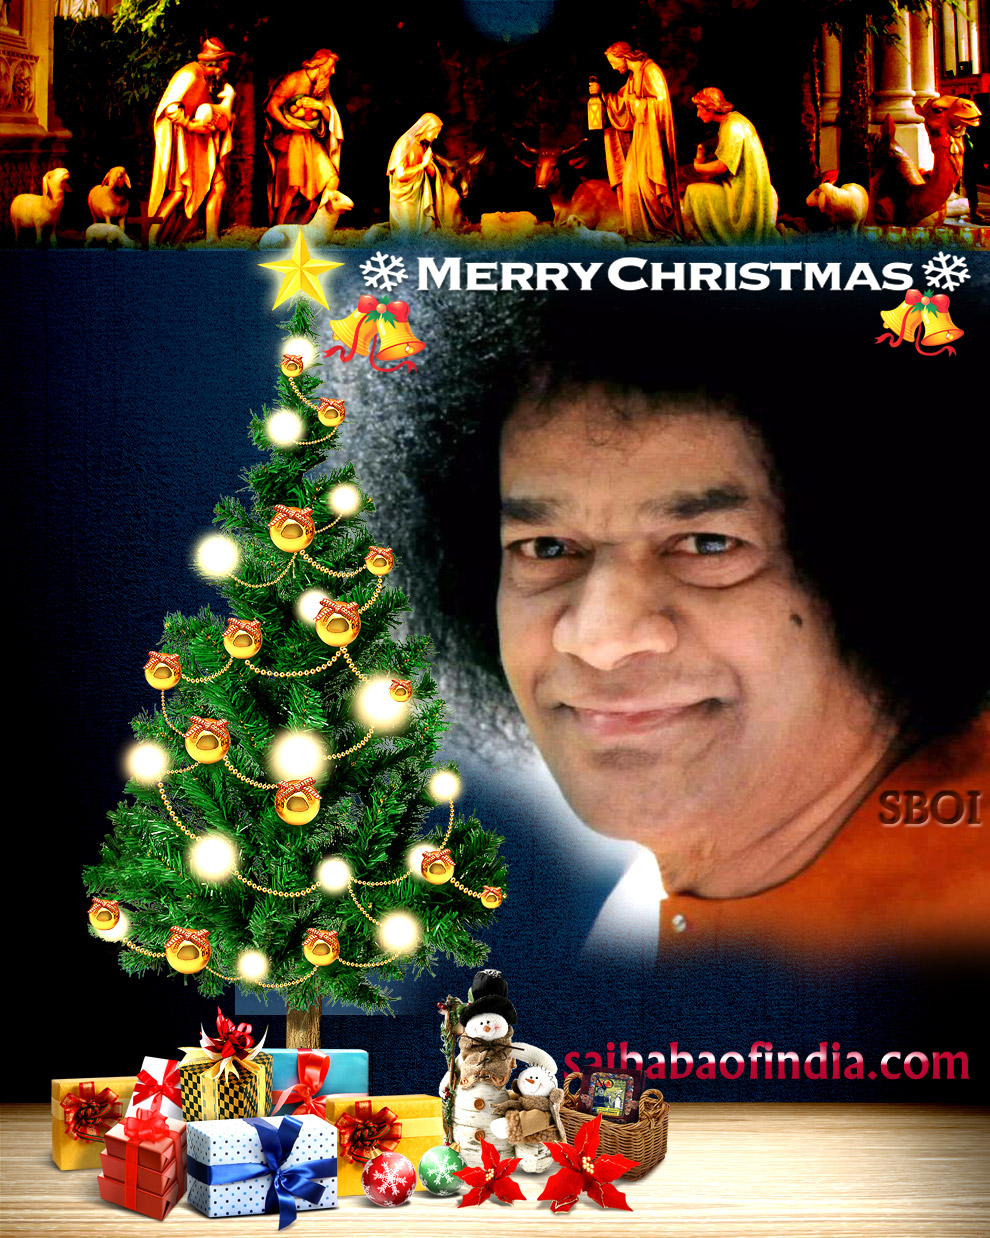 Xmas Sai Baba Greeting Cards Jesus Christ Statue At Sai Baba Ashram